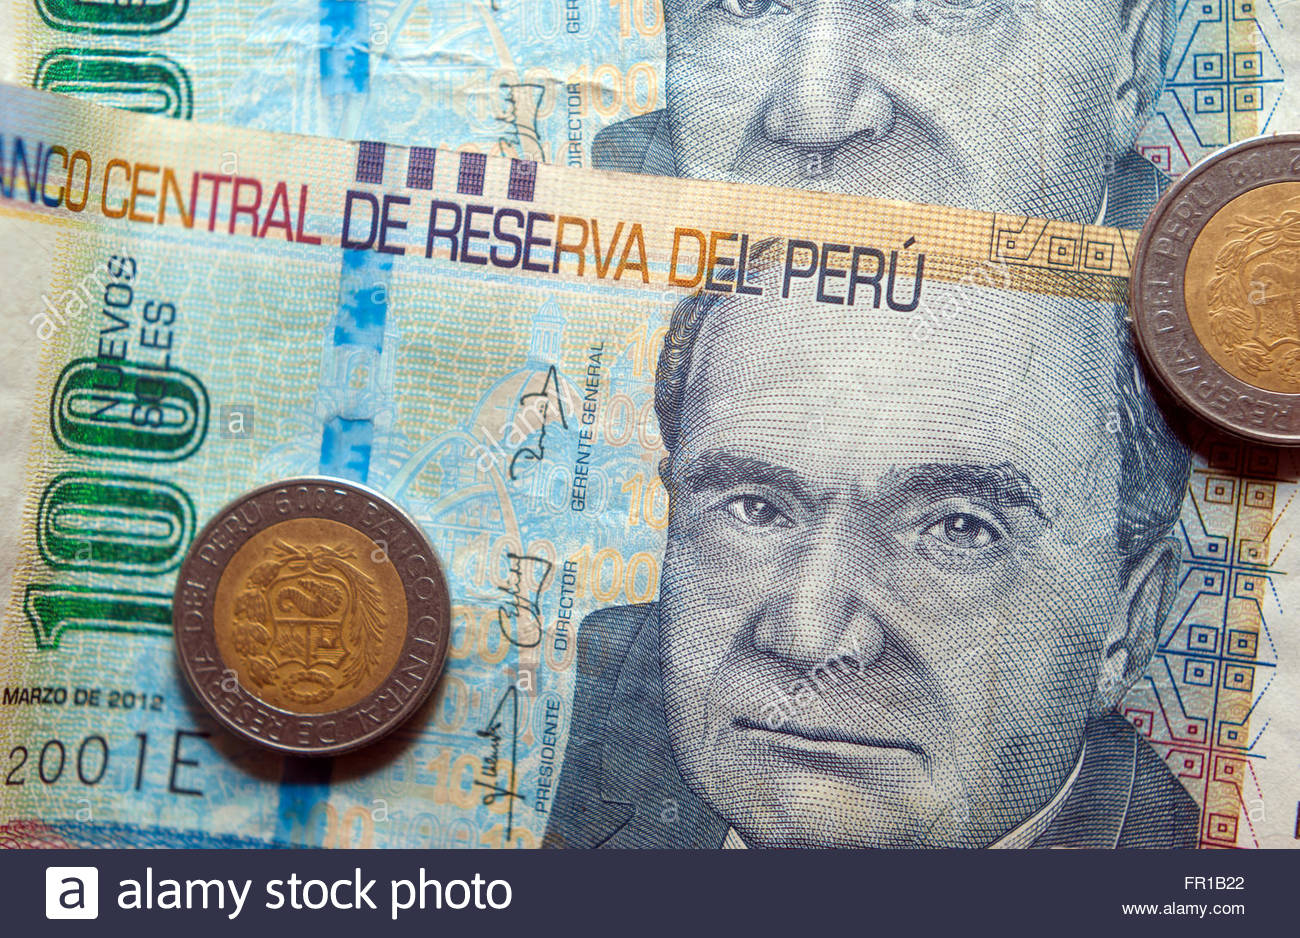 Peruvian Soles (Peru sol) currency notes and coins - Stock Image